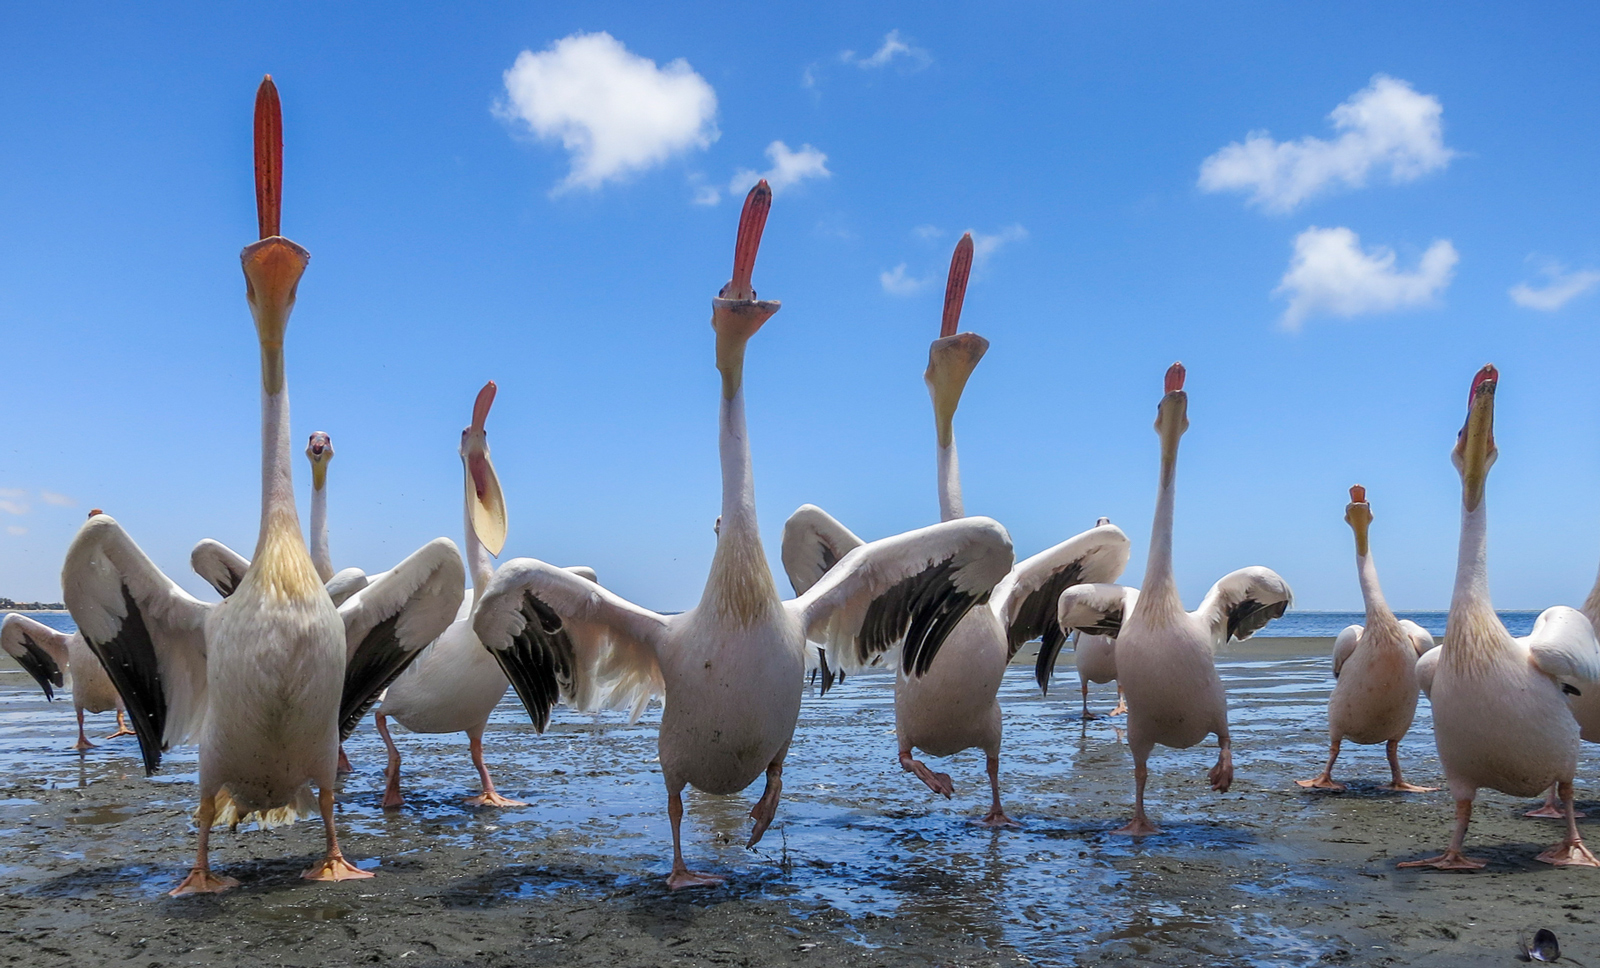 Pelicans compete for fish scraps at Walvis Bay Lagoon, Namibia ©Anna Mart-Kruger